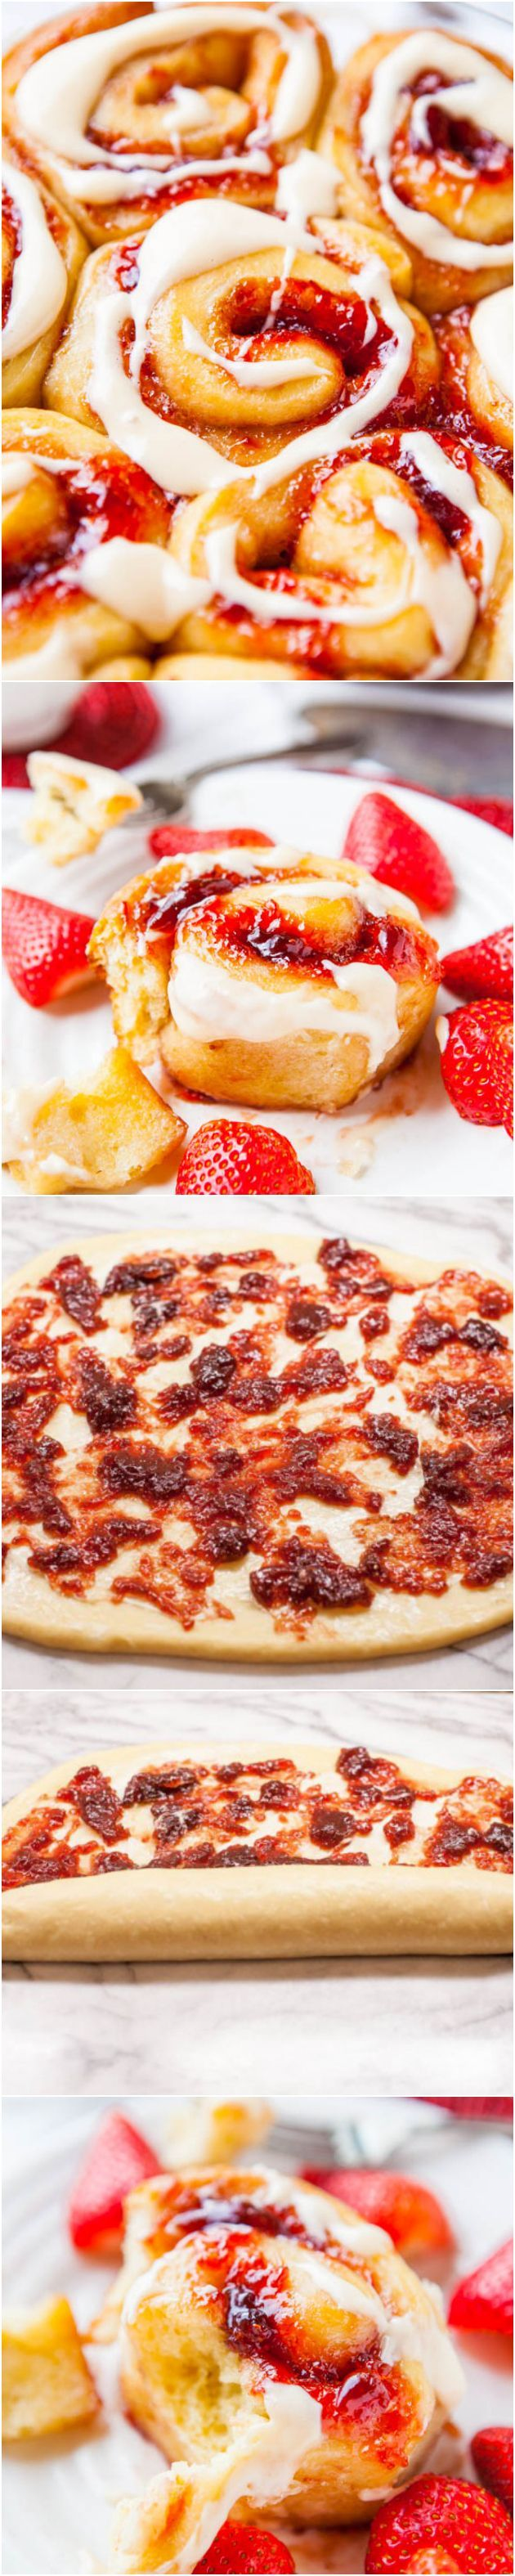 Strawberry Sweet Rolls with Vanilla Cream Cheese Glaze - Soft, buttery rolls loaded with sweet strawberry jam are an automatic hit! There's an overnight/make-ahead option so you can pop them into the oven whenever you're ready! Perfect #MothersDay treat!